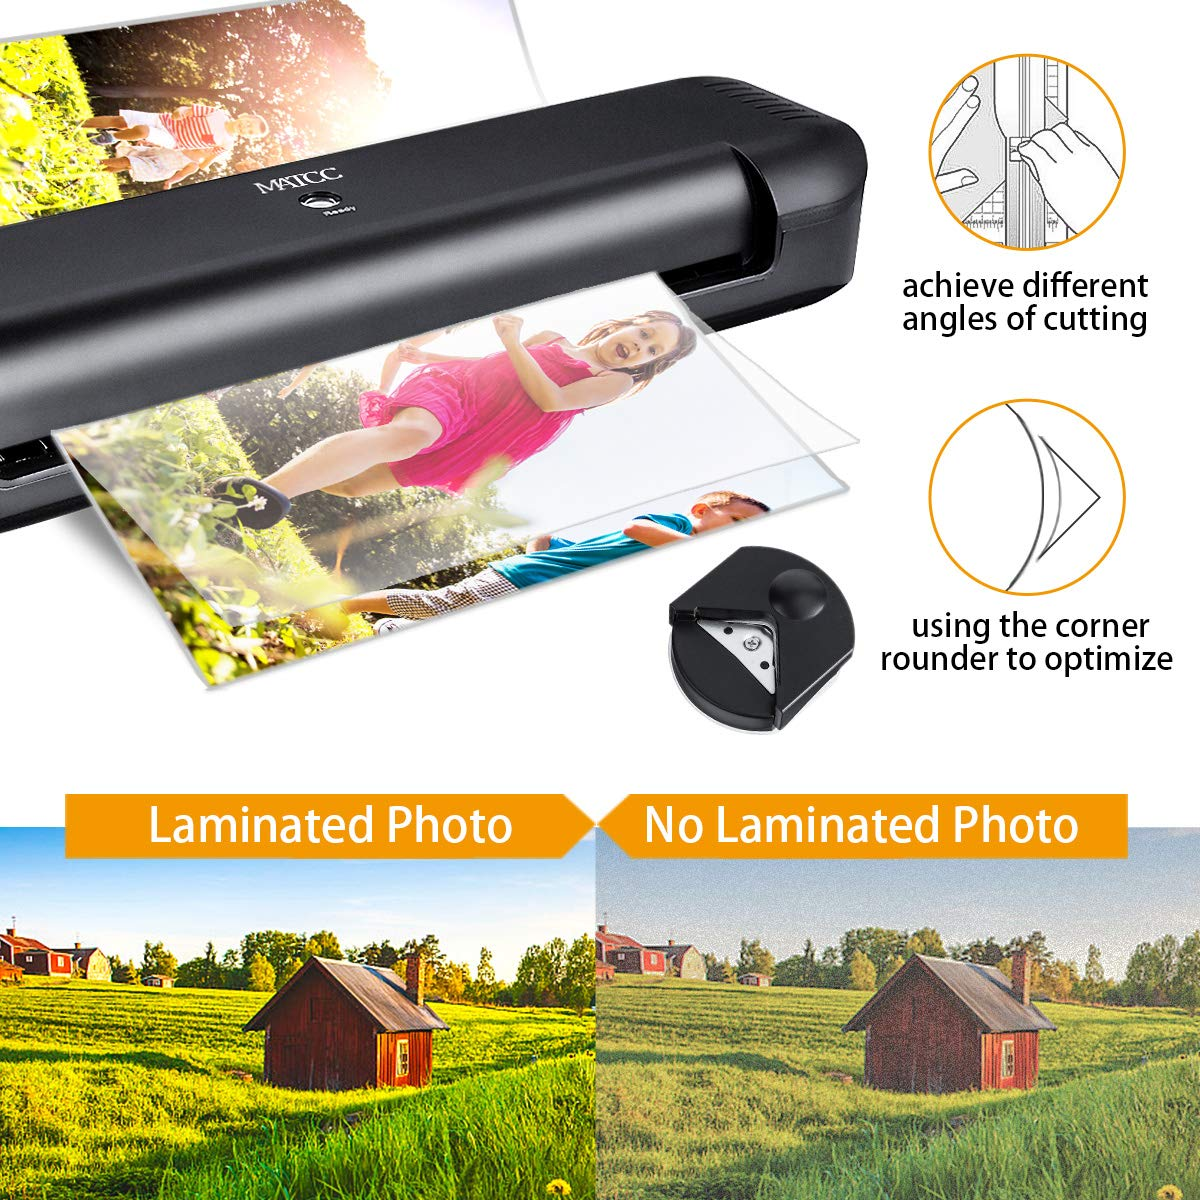 MATCC 13'' Thermal Laminator Machine for A3/A4/A6 Laminating Machine with Paper Cutter and Corner Rounder 2 Roller System Laminator Machine Faster Warm-up Quick Laminating Speed Suit for Home Art by MATCC (Image #3)